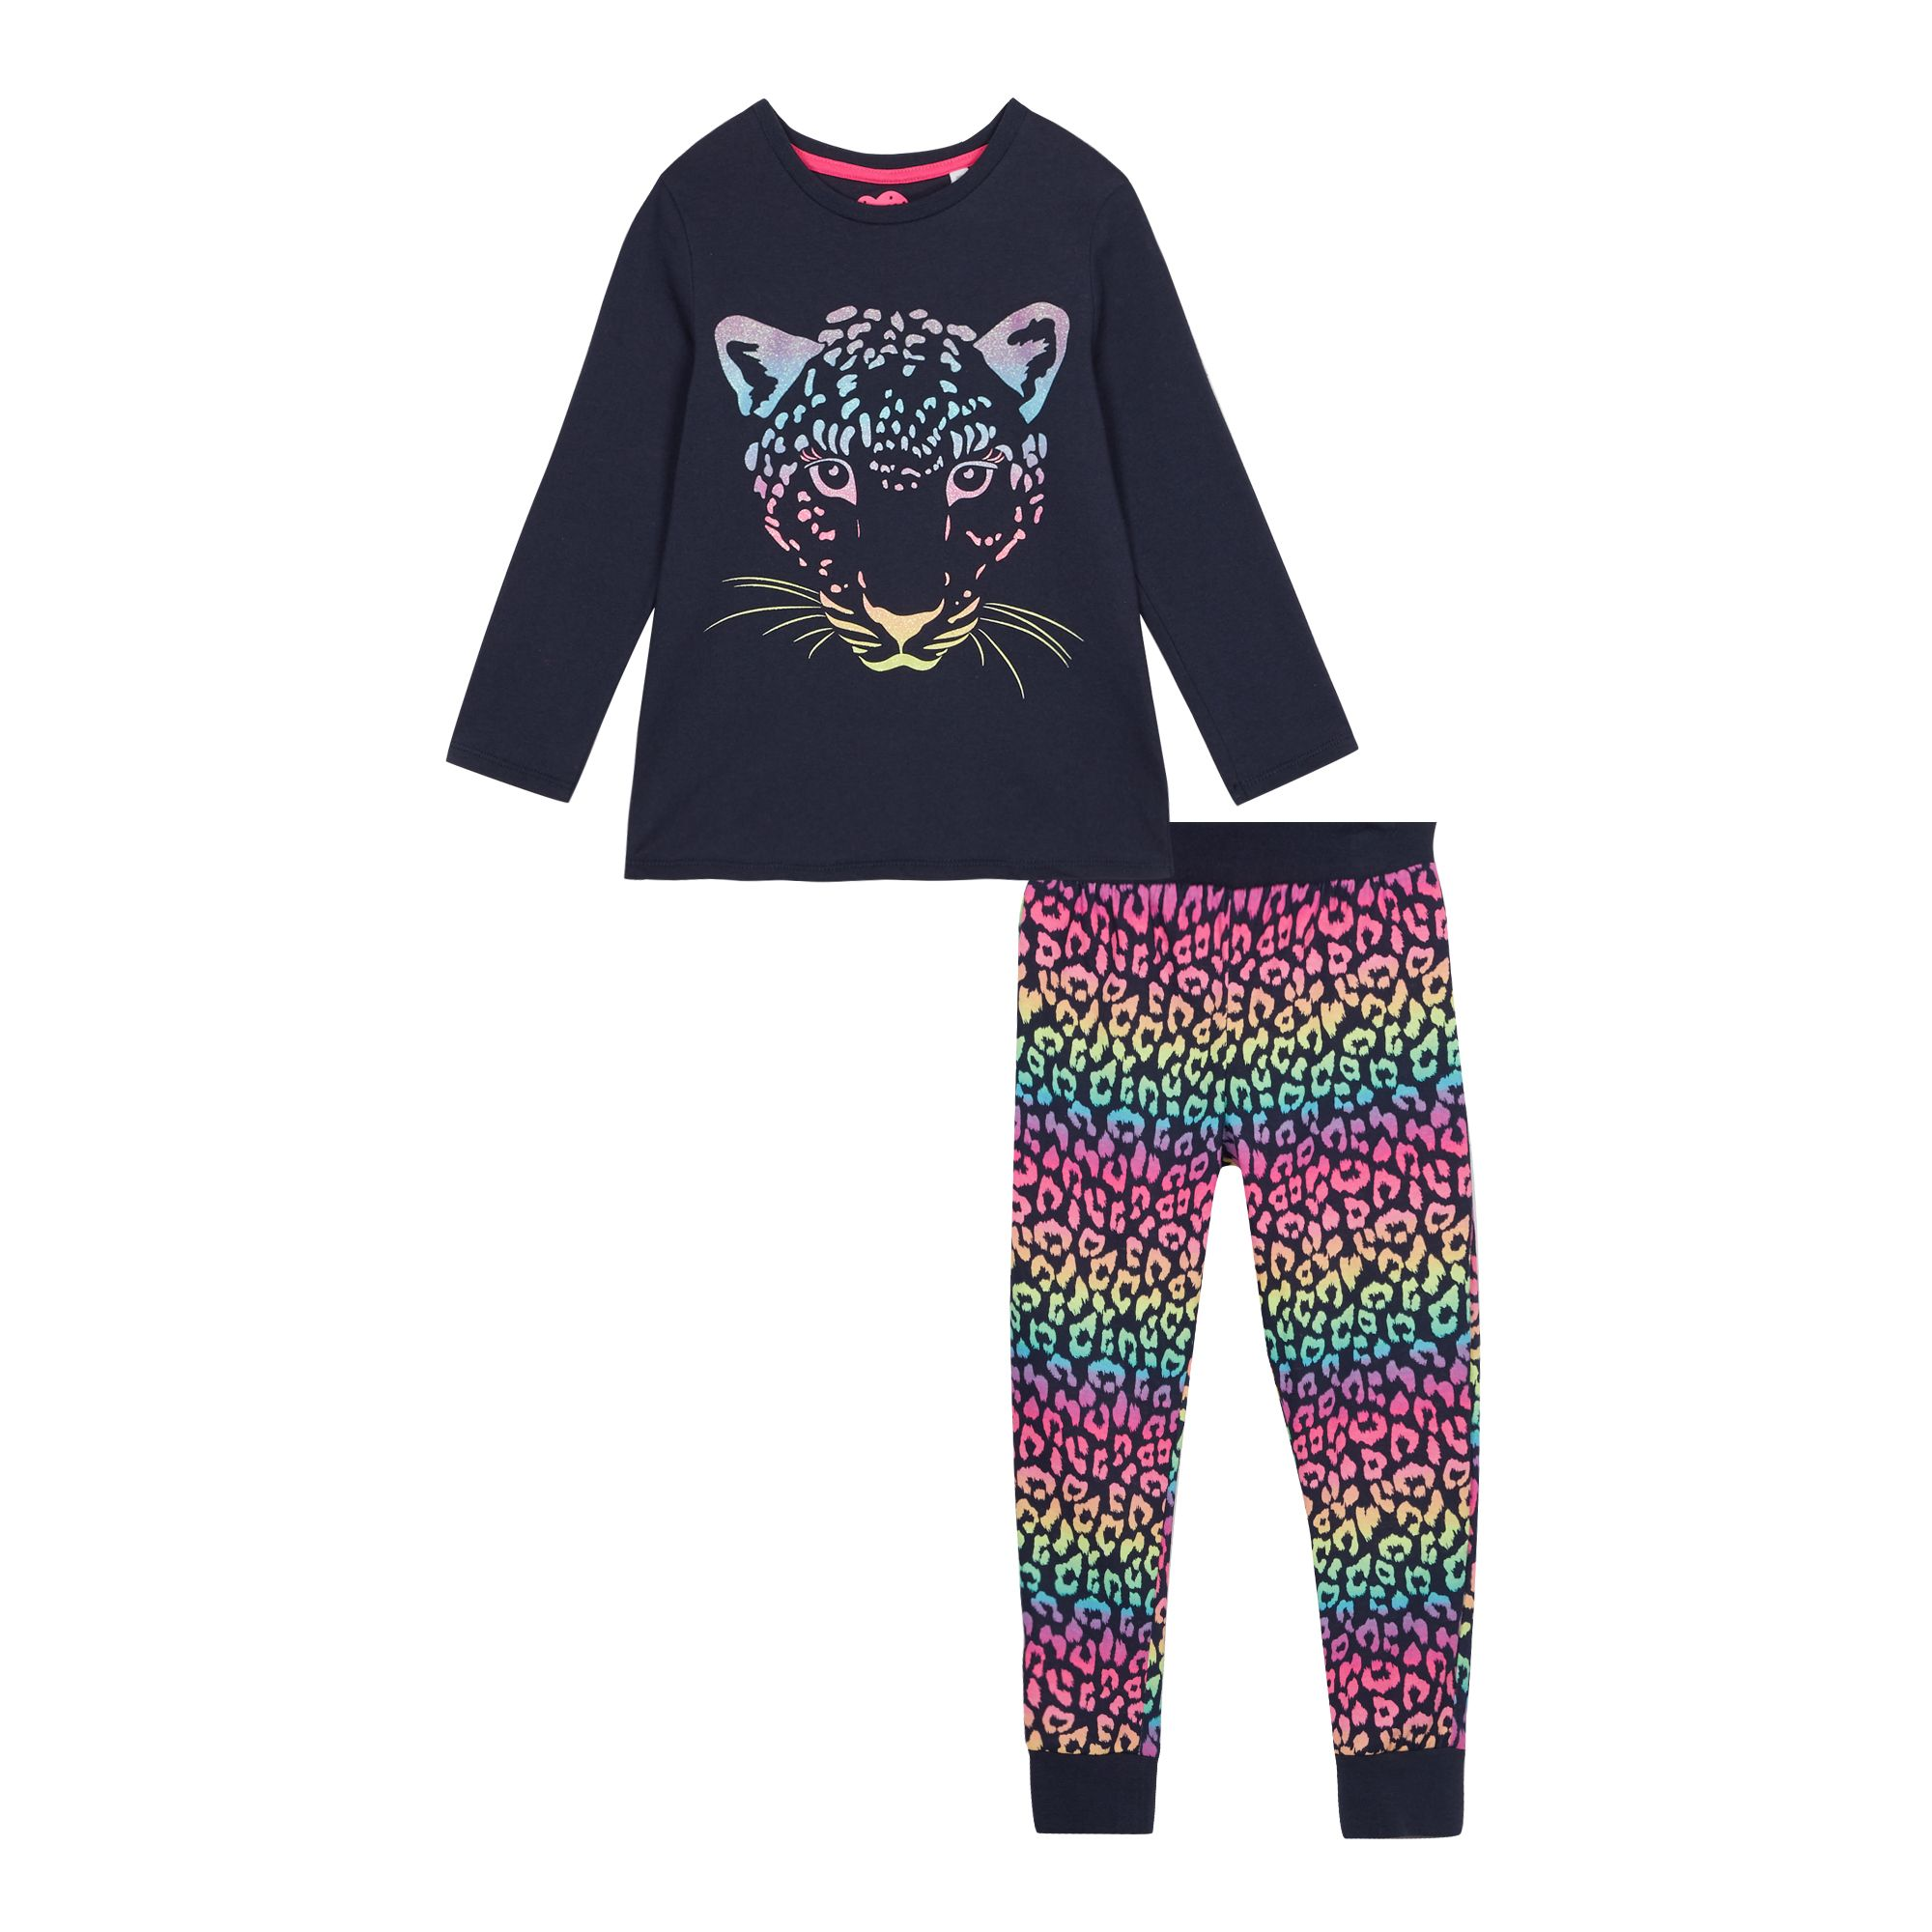 d7b26d24a6 Responsive image. FREE Standard Delivery on orders over £45. Bluezoo Kids  Girls' Multicoloured ...